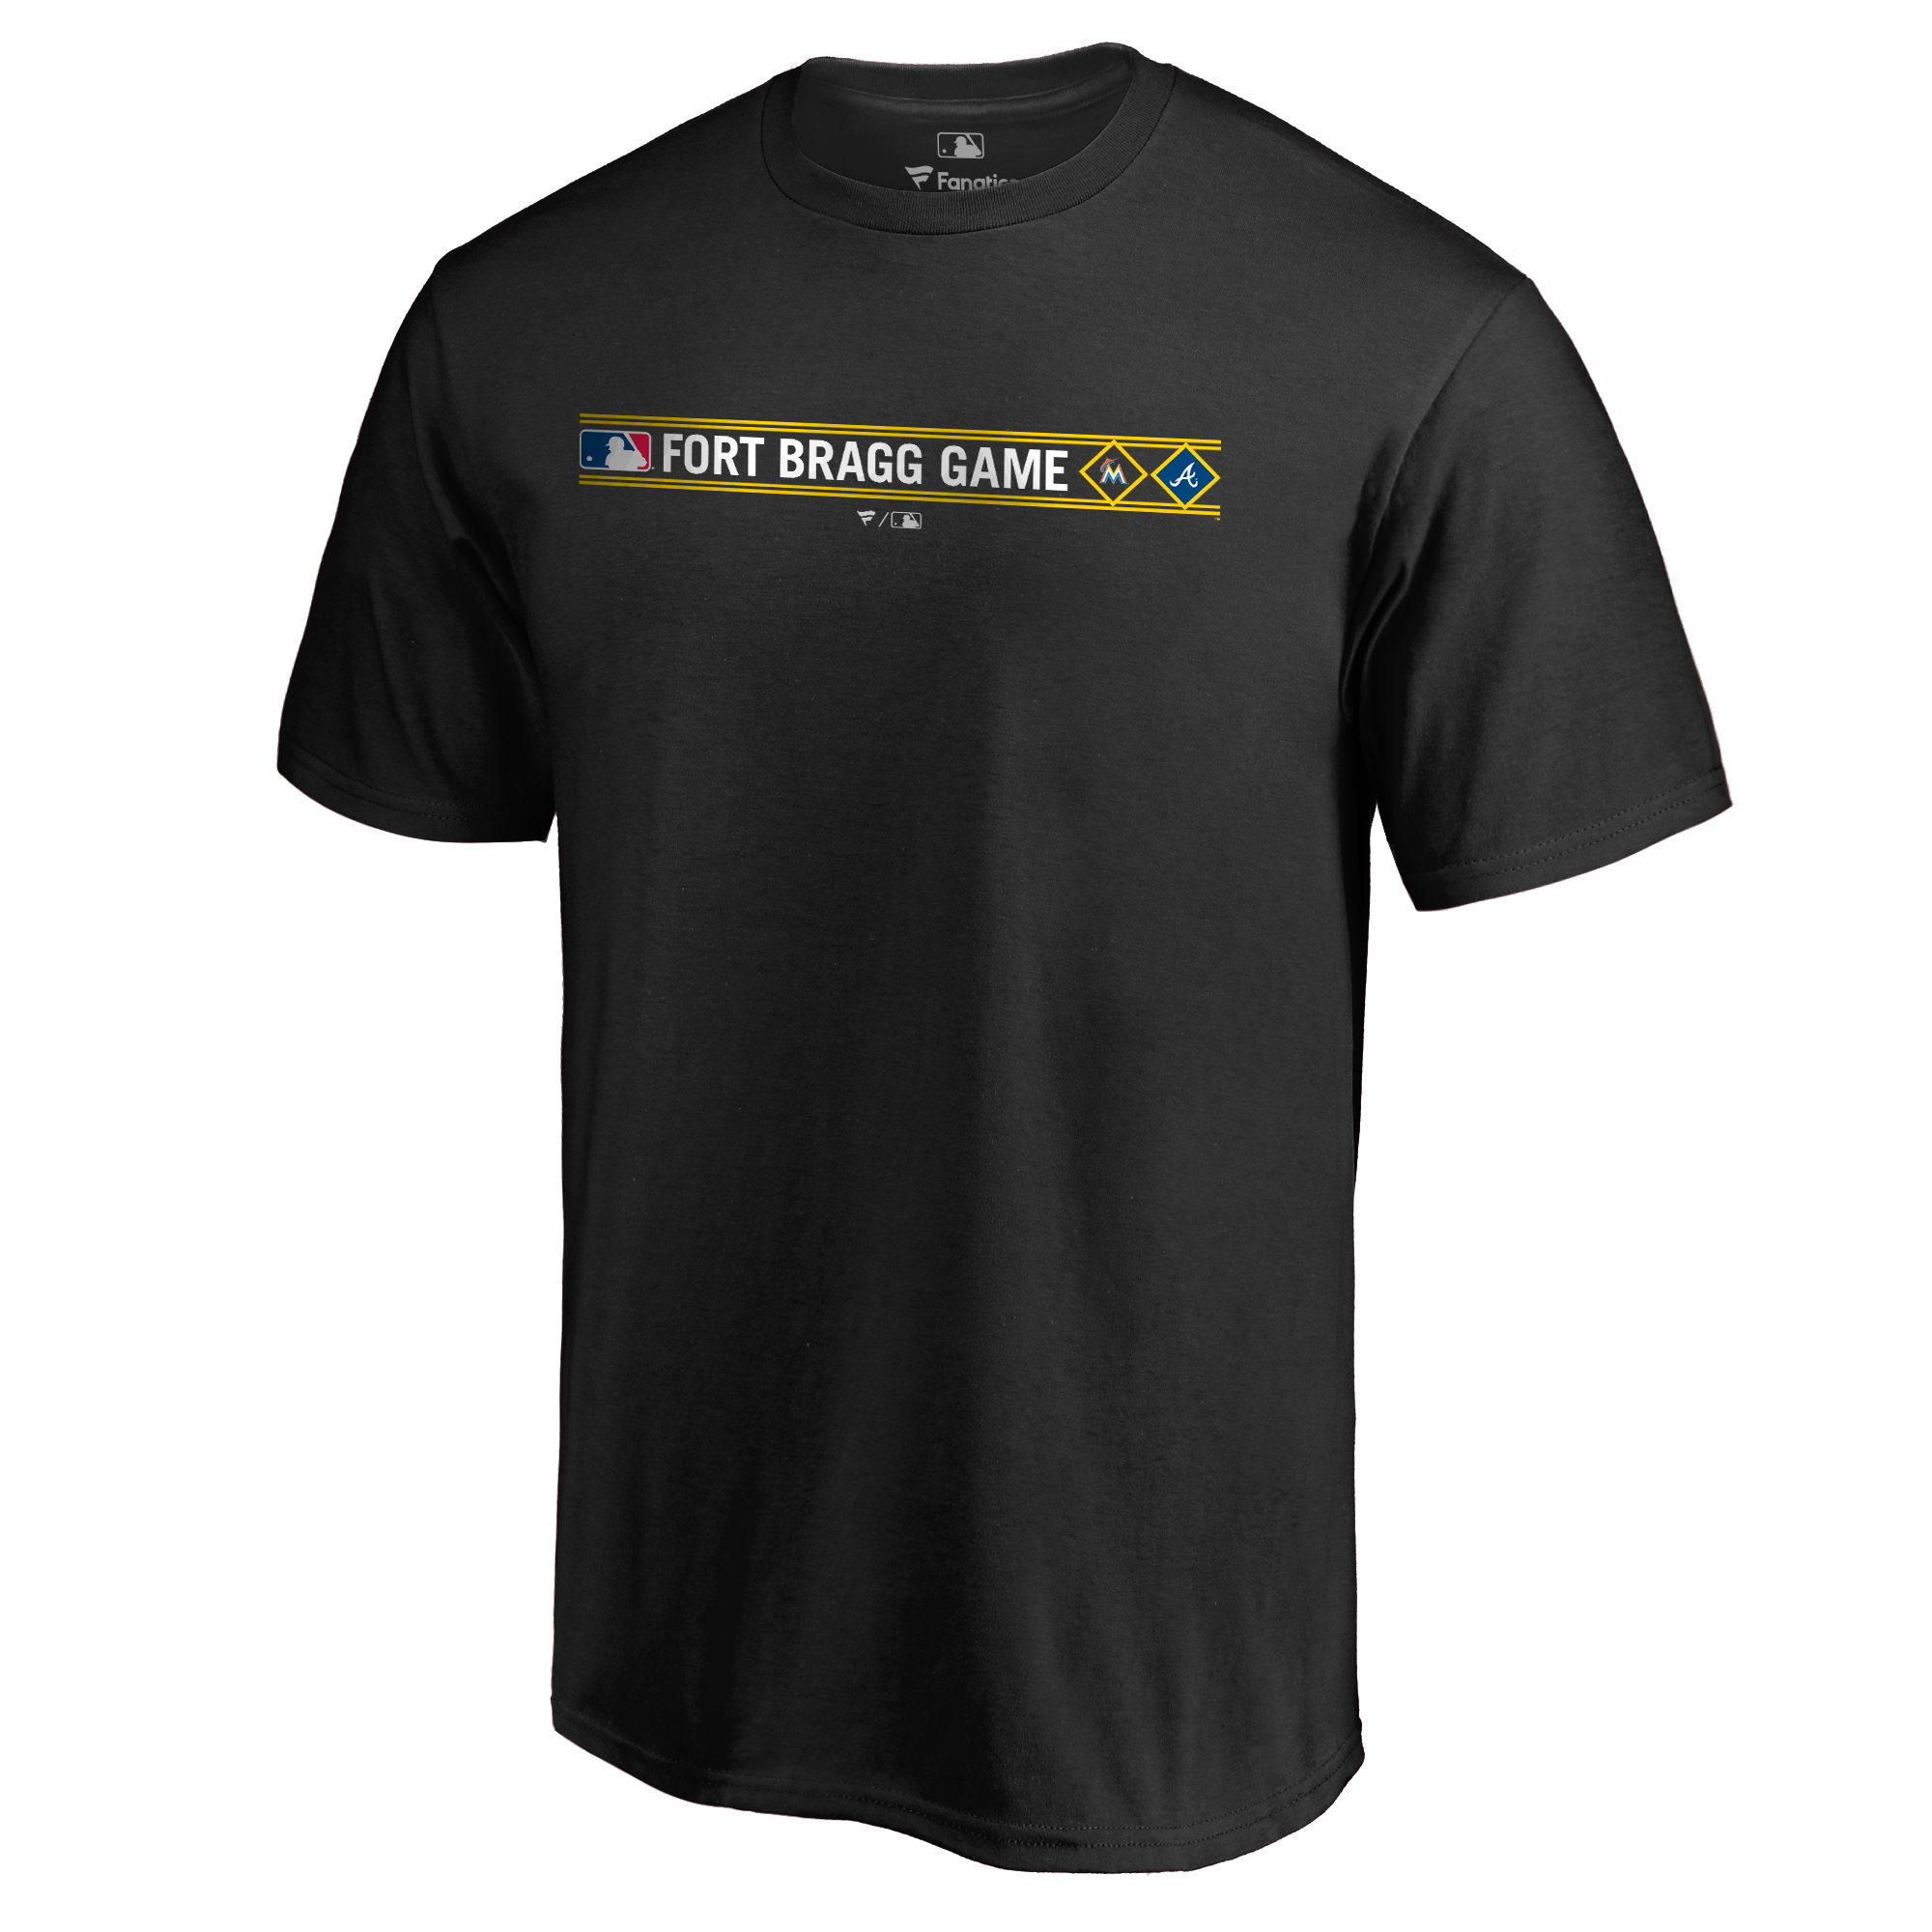 MLB Fort Bragg T-Shirt - Black